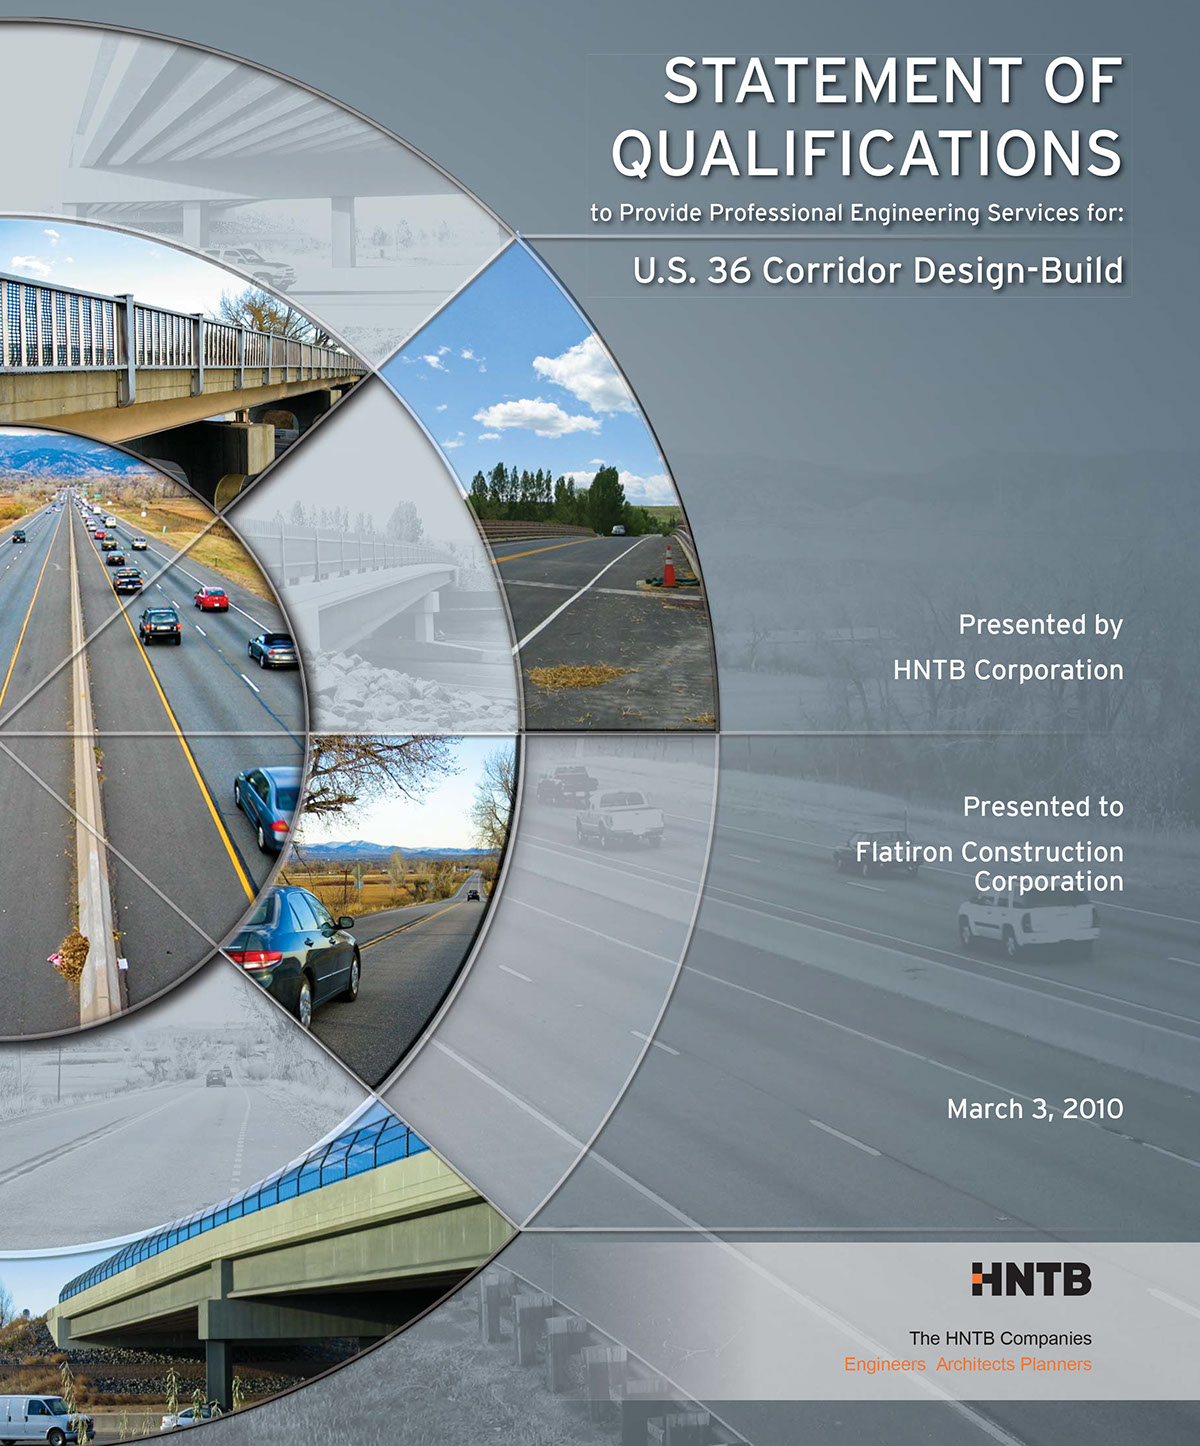 statement of qualifications cover and document design on